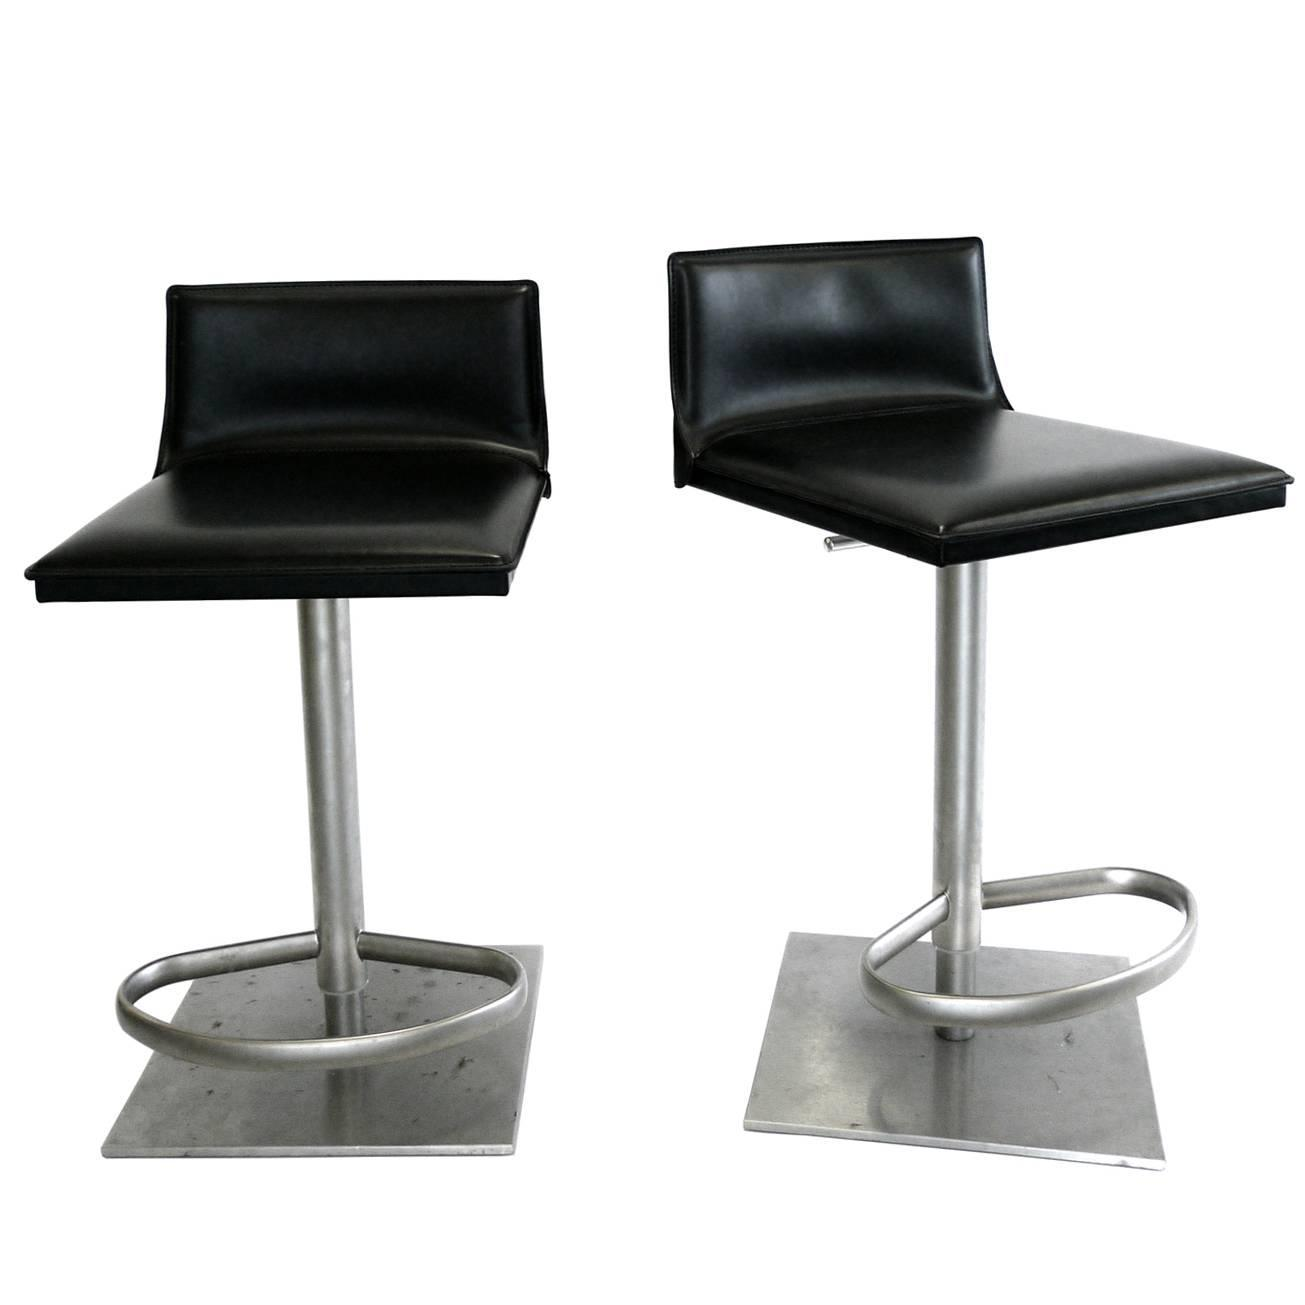 Italian Leather And Steel Height Adjule Bar Stool By Frag At 1stdibs